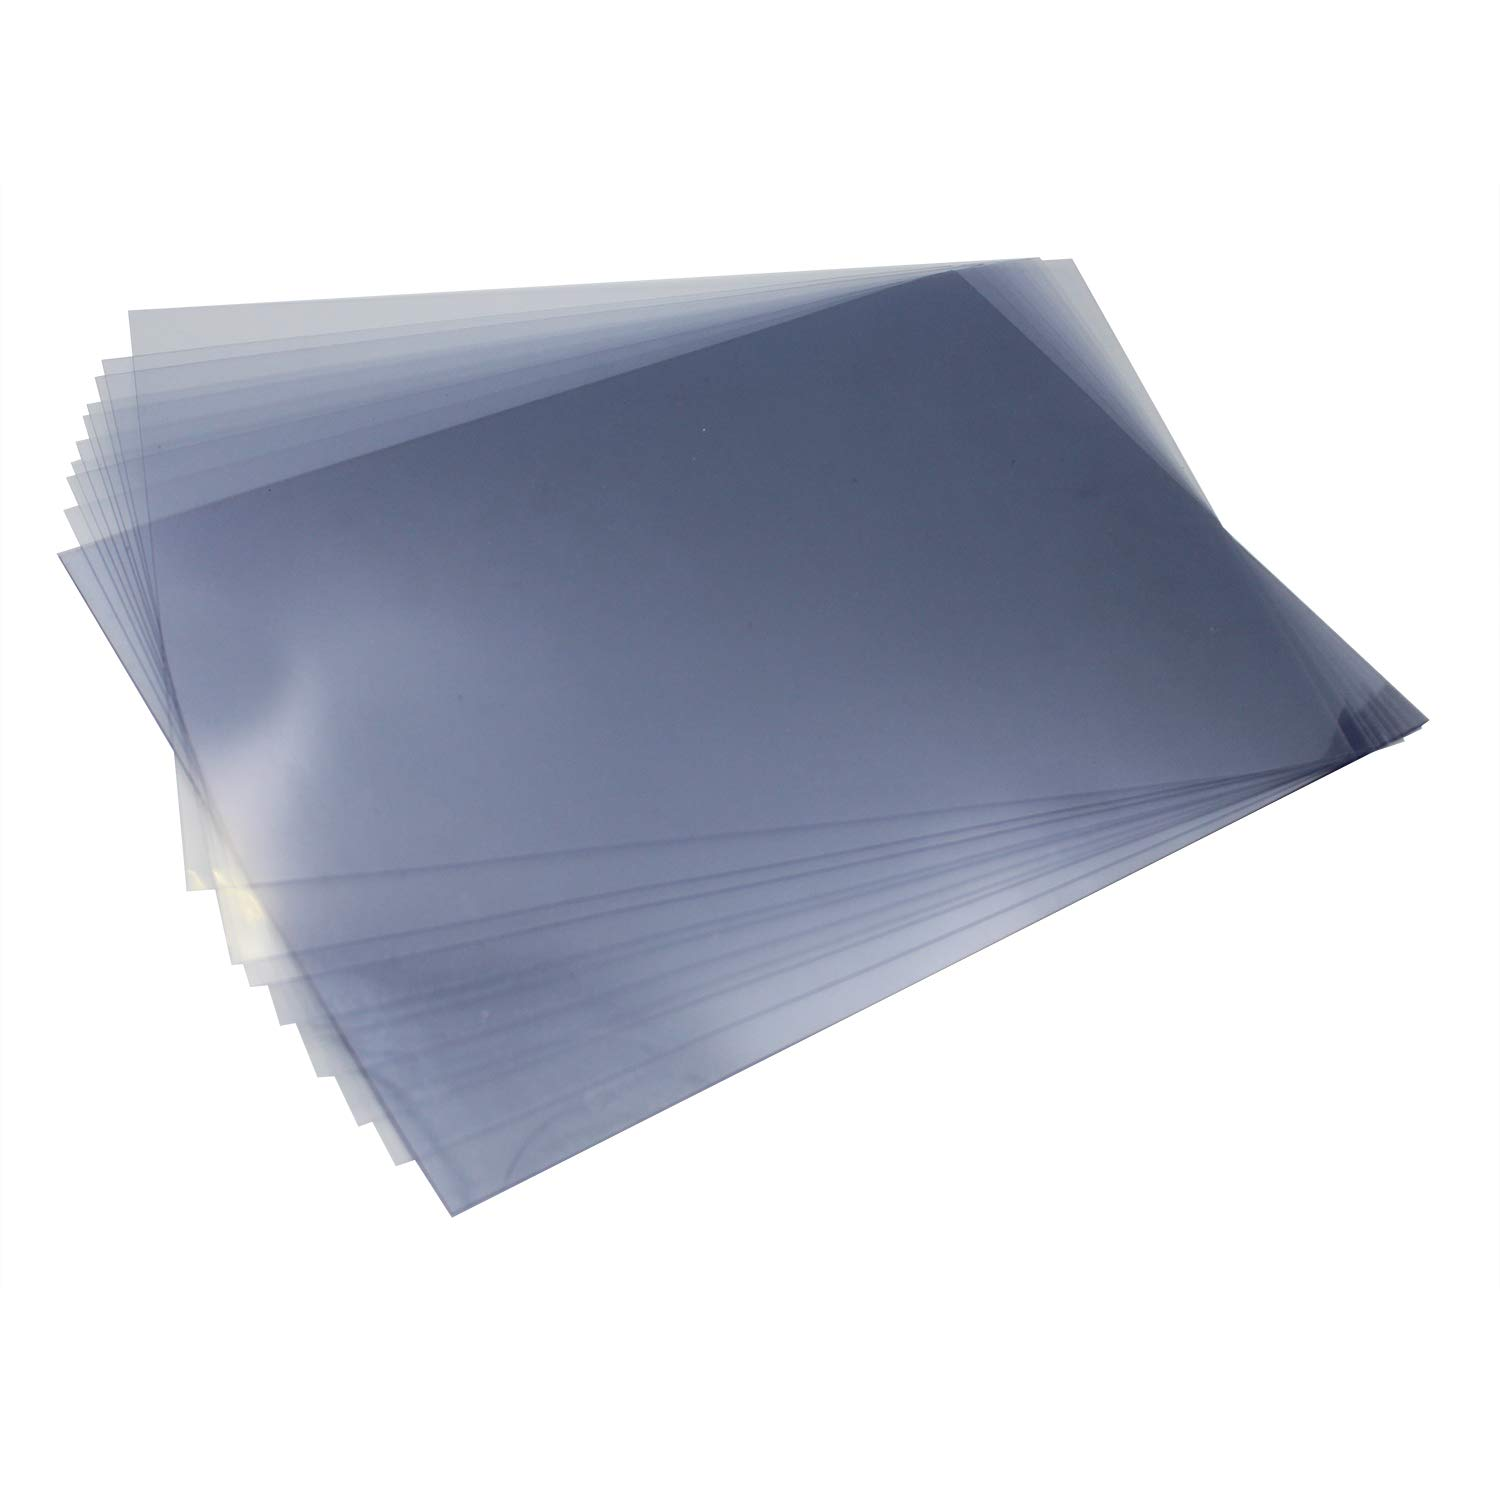 8 Mil Letter Binditek Clear PVC Binding Presentation Covers,PVC Report Cover for Business Documents School Projects 8-1//2 x 11 Inches Pack of 100